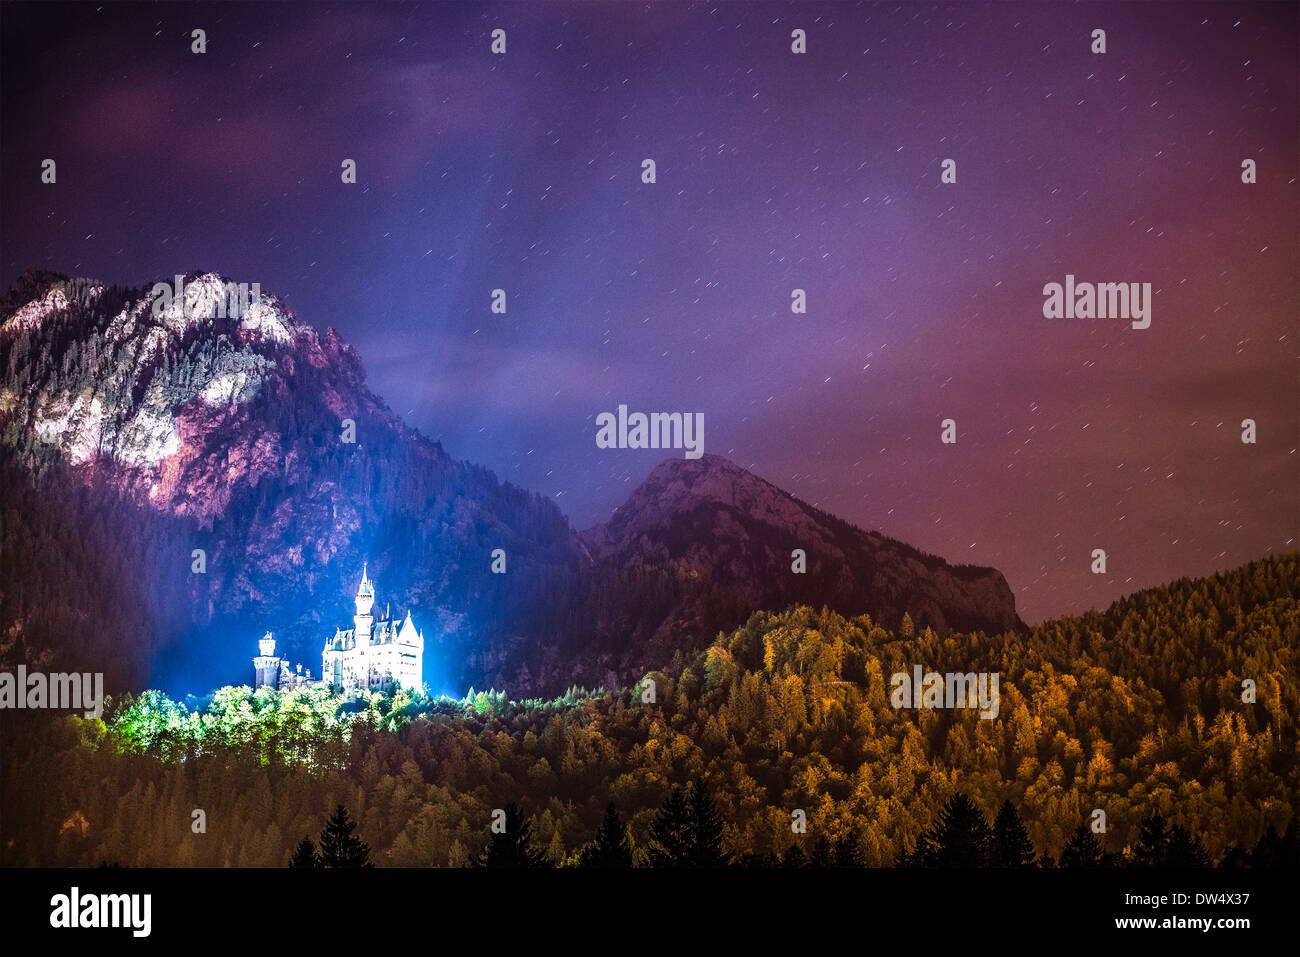 Neuschwanstein Castle at night in the Bavarian Alps of Germany. - Stock Image